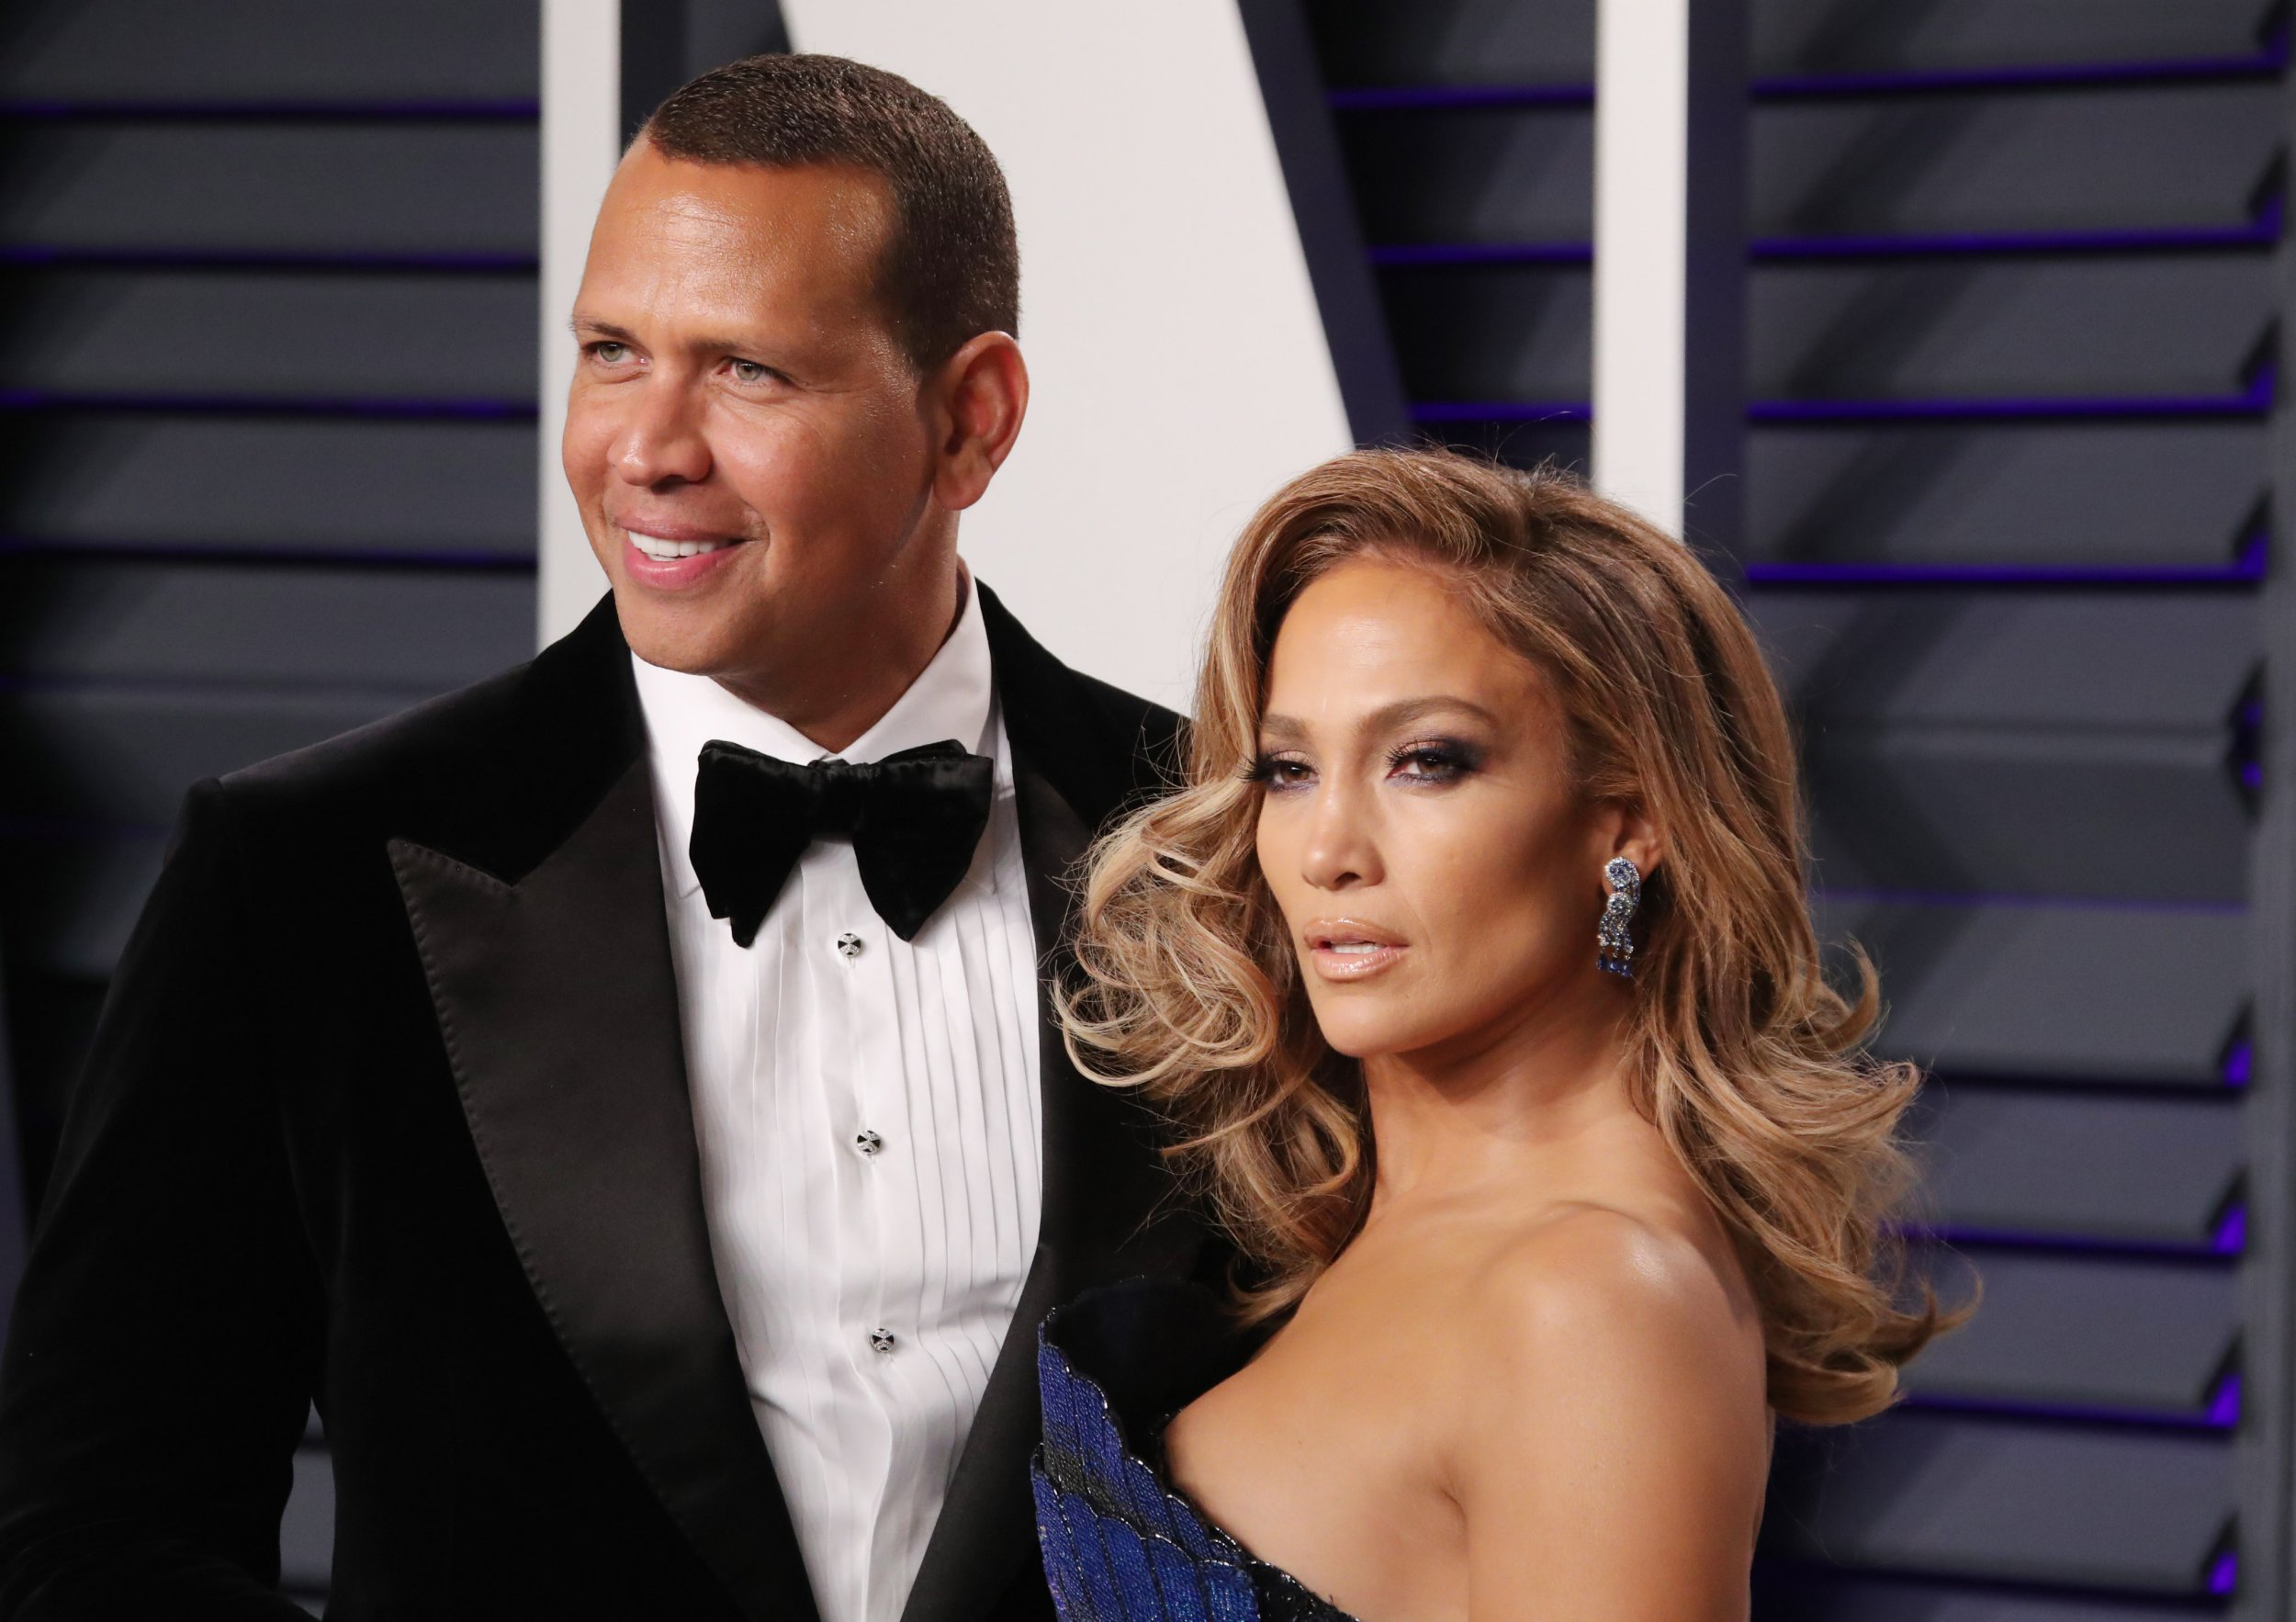 Mandatory Credit: Photo by Matt Baron/REX/Shutterstock (10119055xy) Alex Rodriguez and Jennifer Lopez Vanity Fair Oscar Party, Arrivals, Los Angeles, USA - 24 Feb 2019